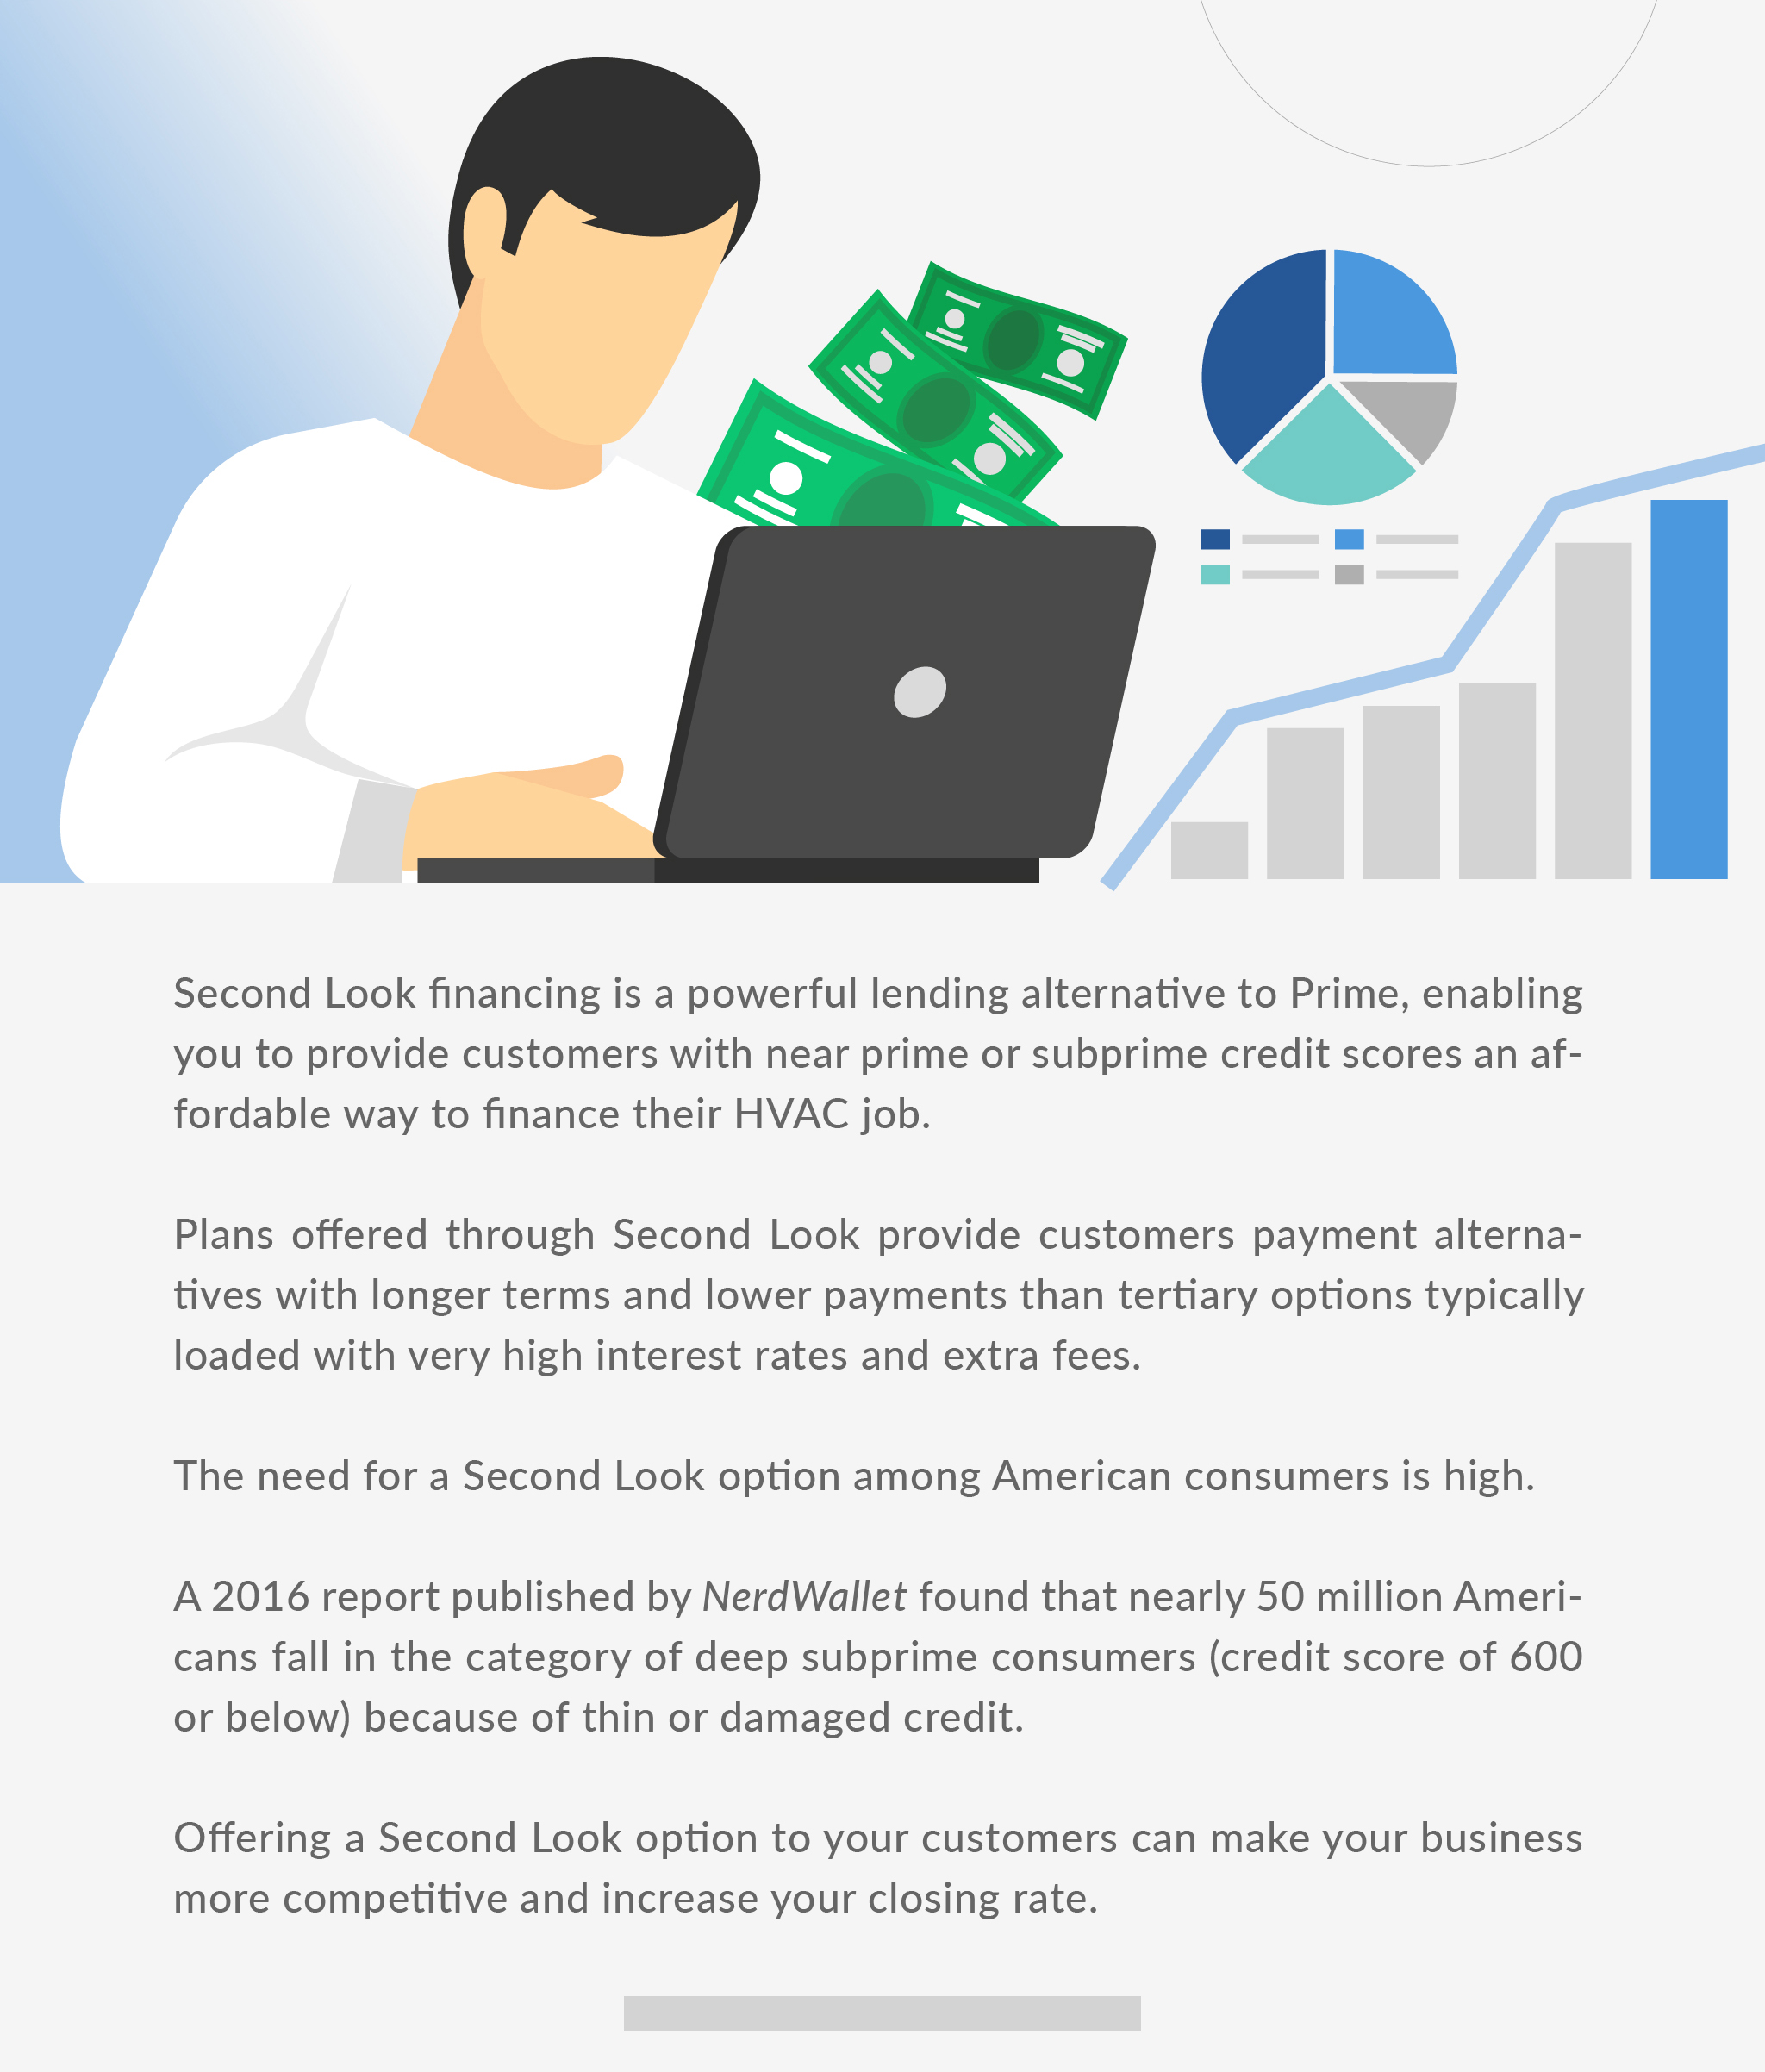 Second Look financing is a powerful leading alternative to Prime, enabling you to provide customers with near prime or subprime credit scores an affordable way to finance their HVAC job.